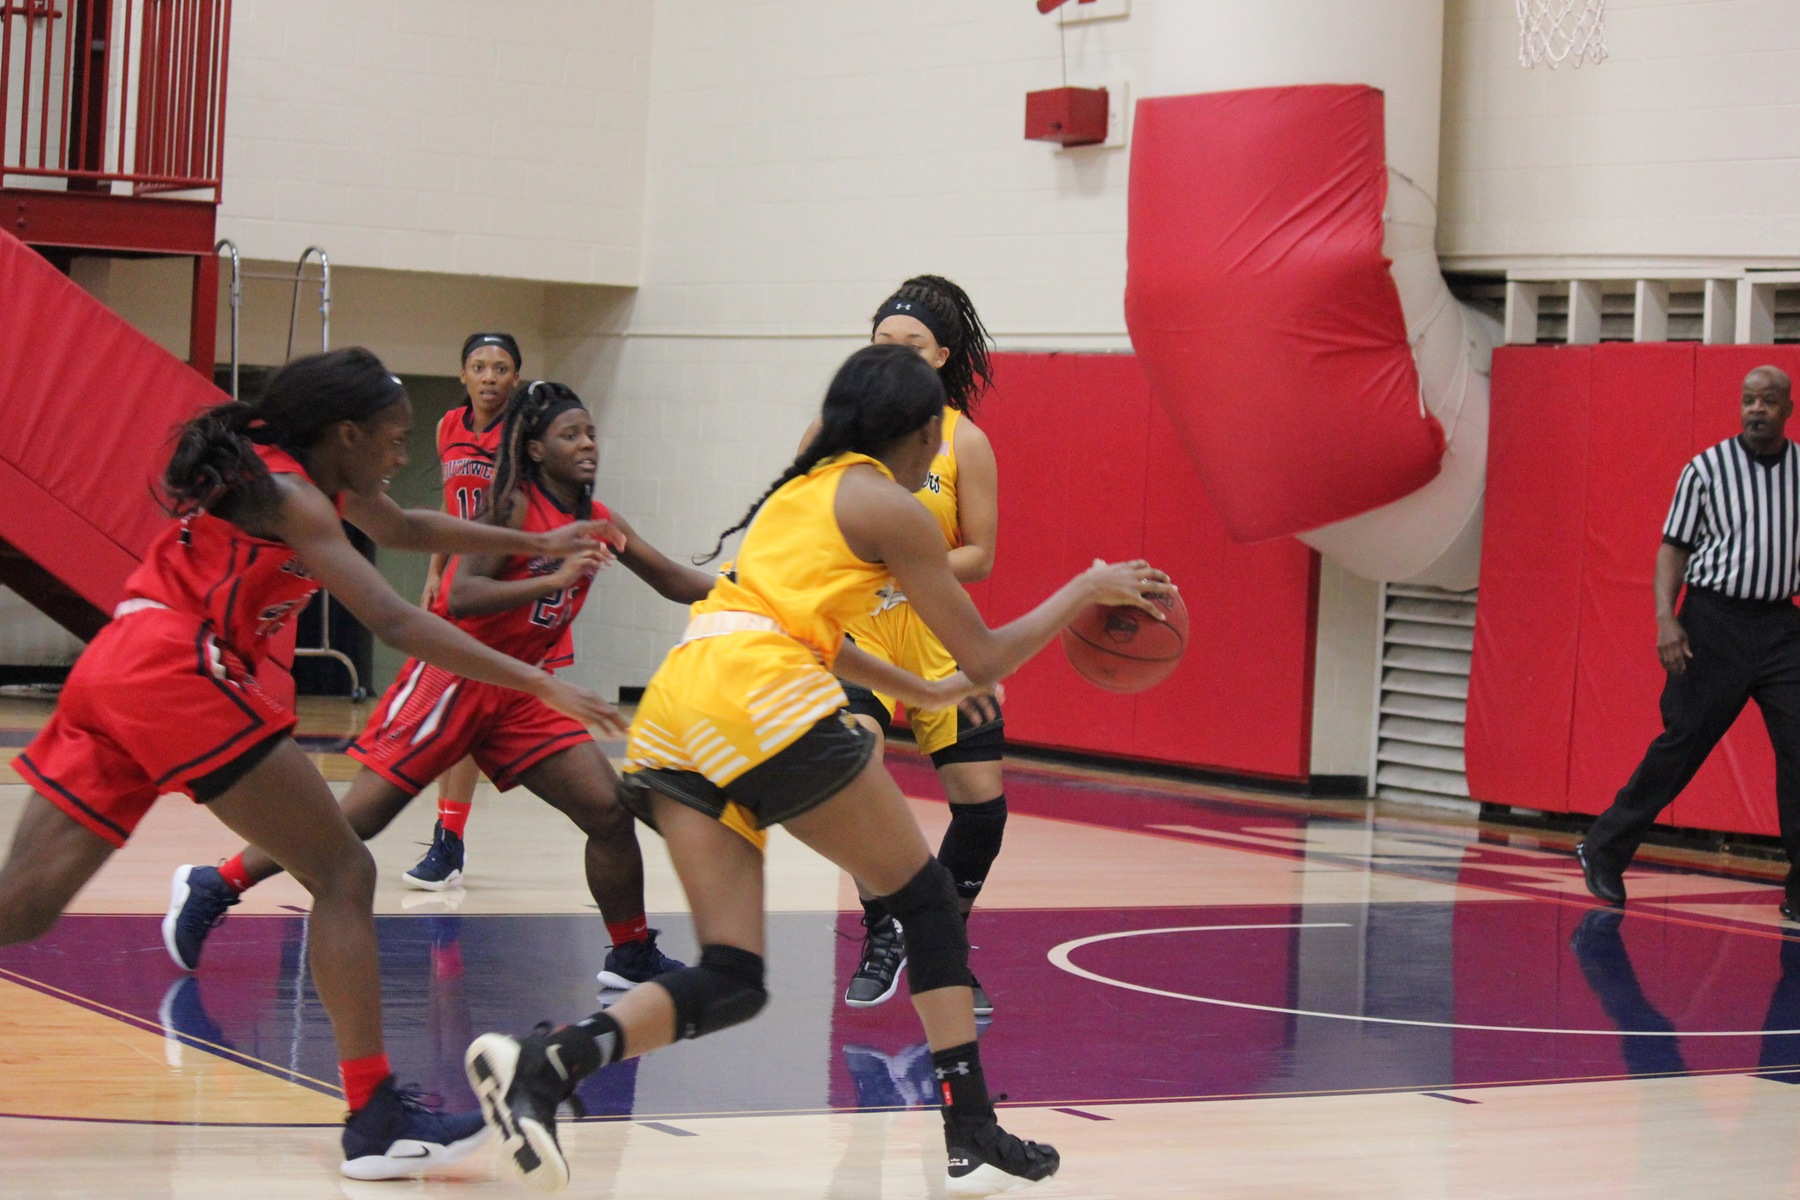 Lady Raiders win with defense